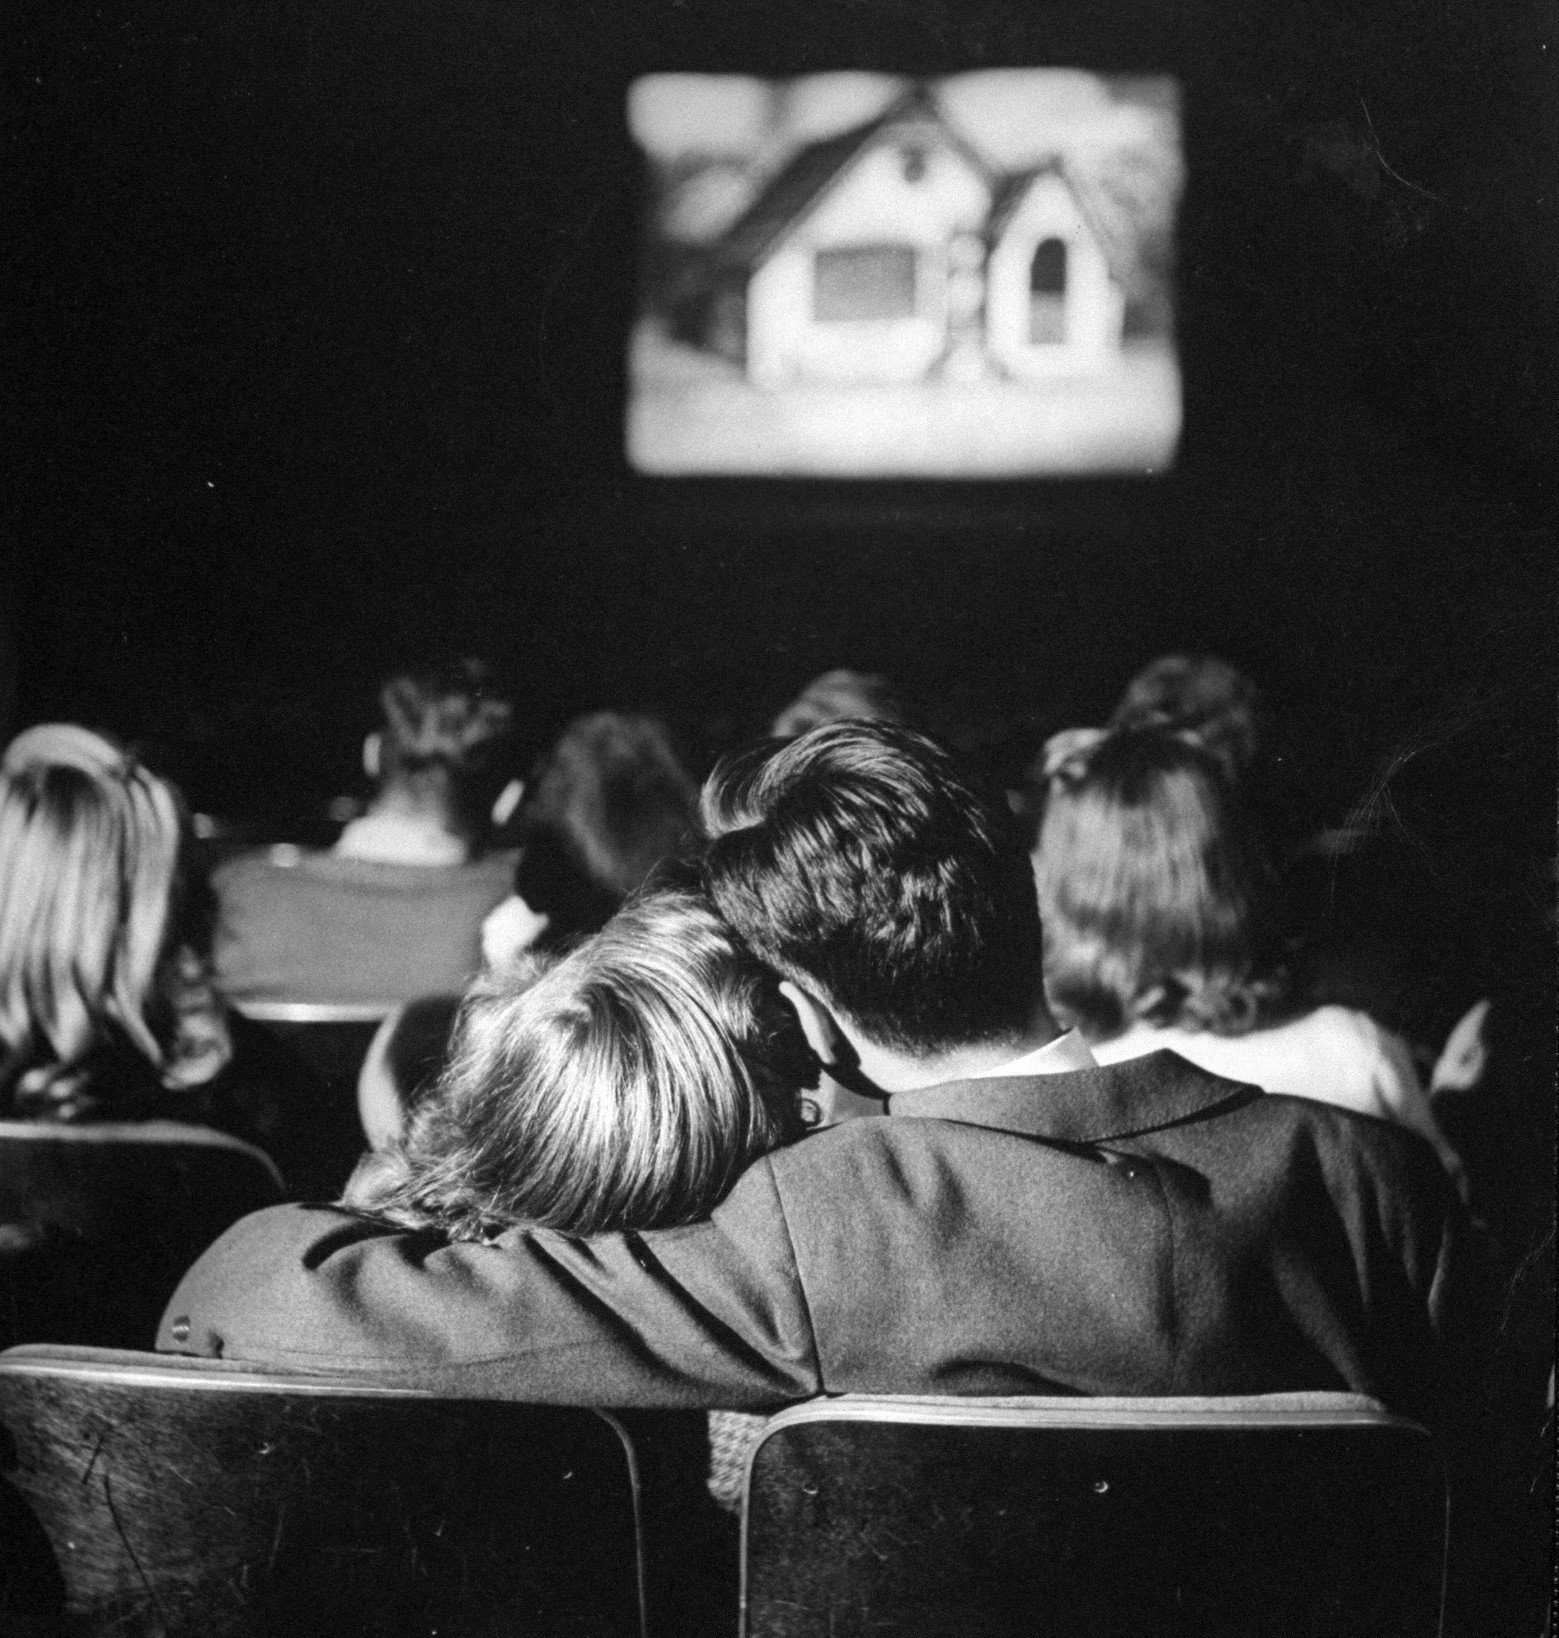 Teenage couple at the movies, 1944.